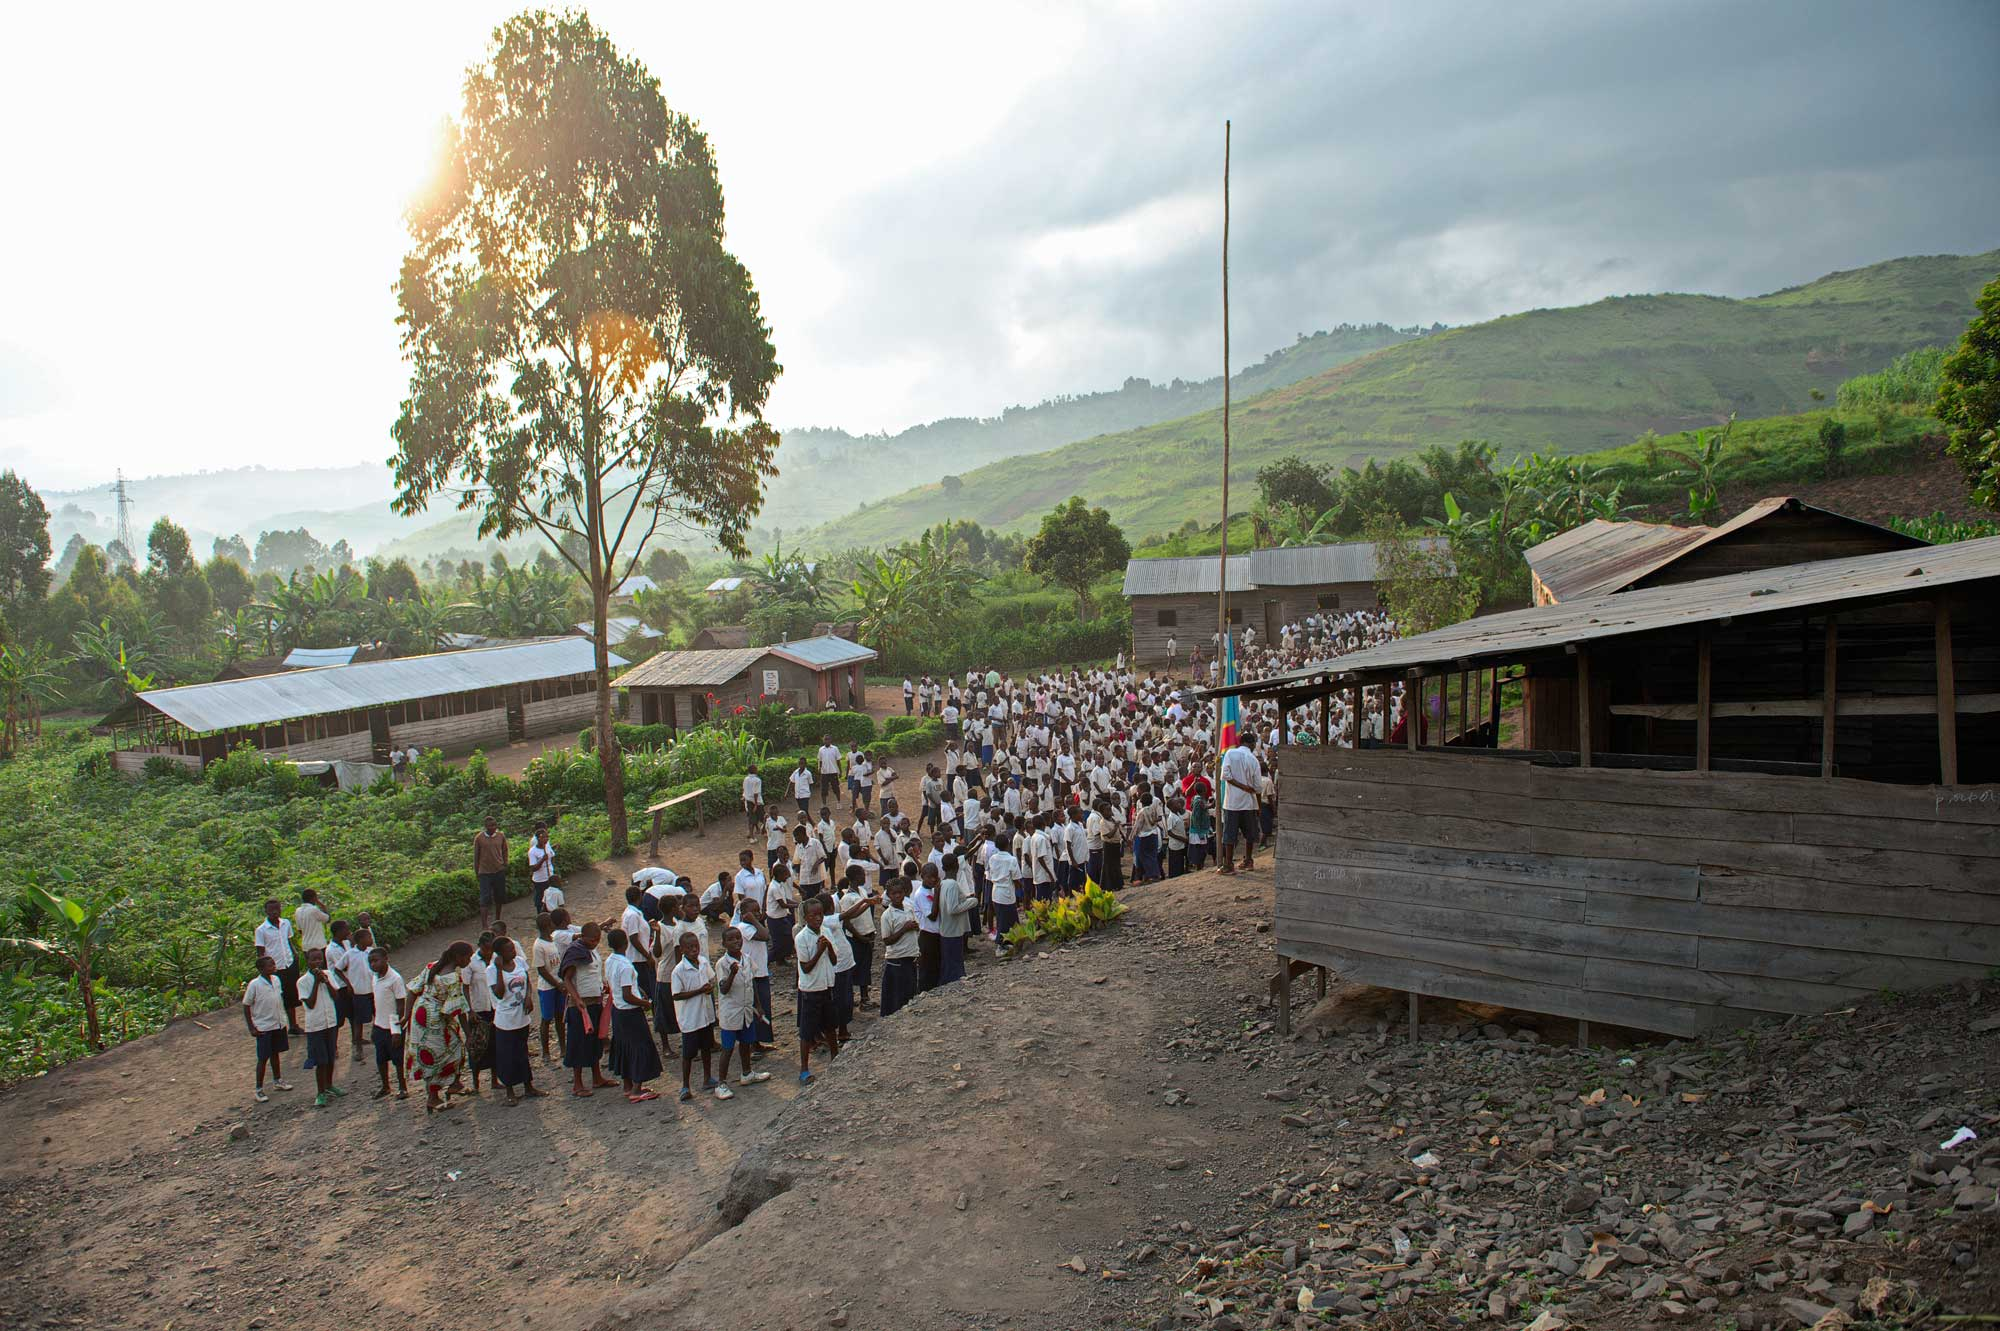 Children gather outside low wooden buildings in a valley.